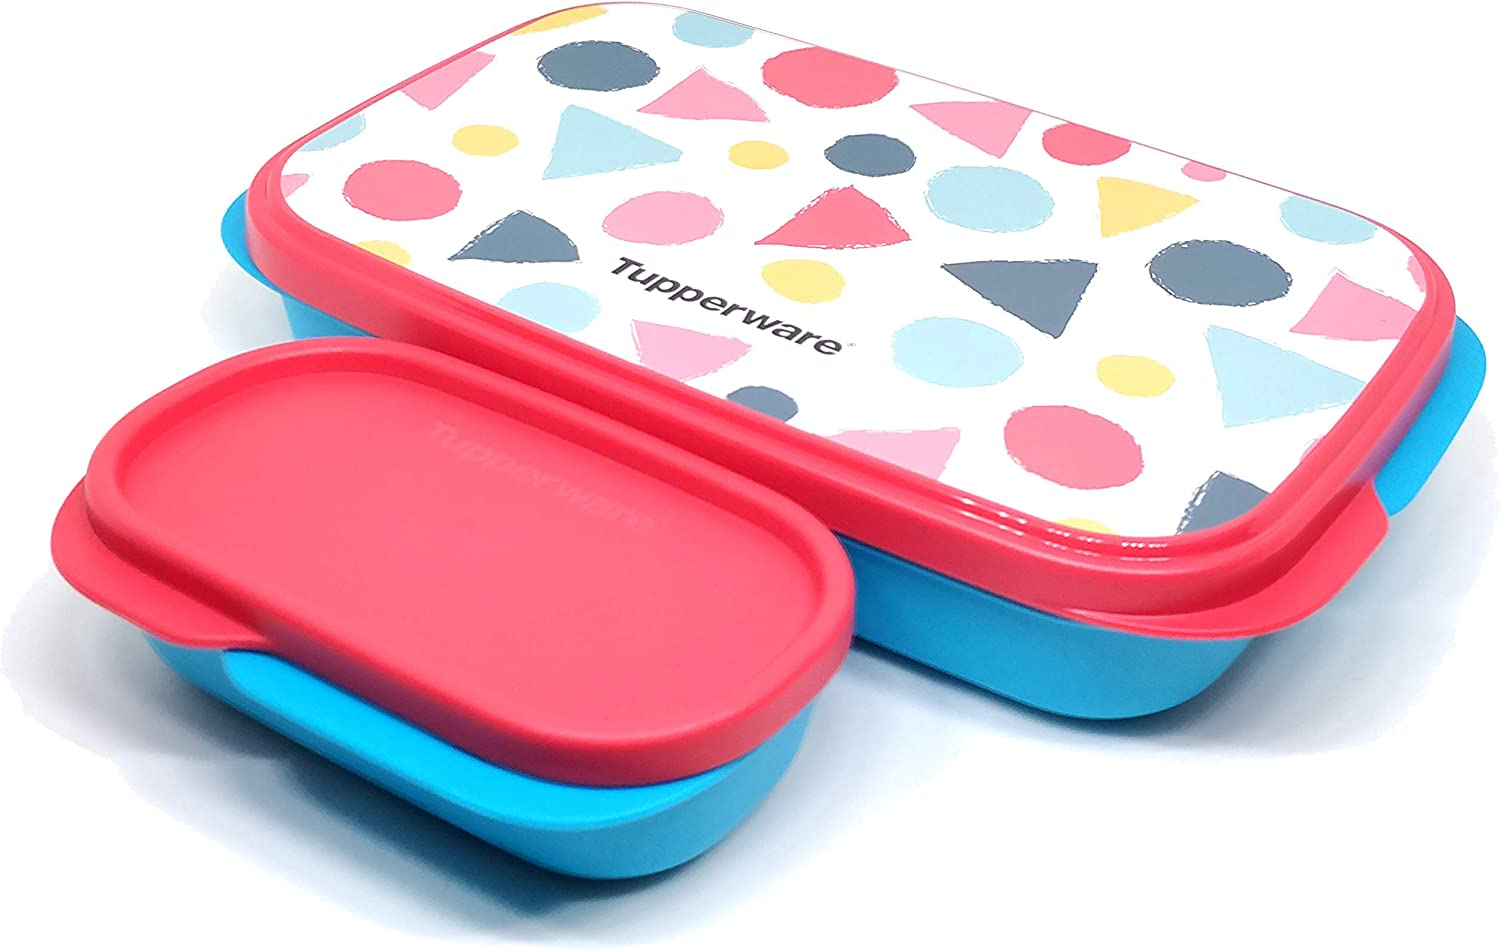 Tupperware Triangle Print My Lunch Box Set of 1 Multicolor (Color May Vary)